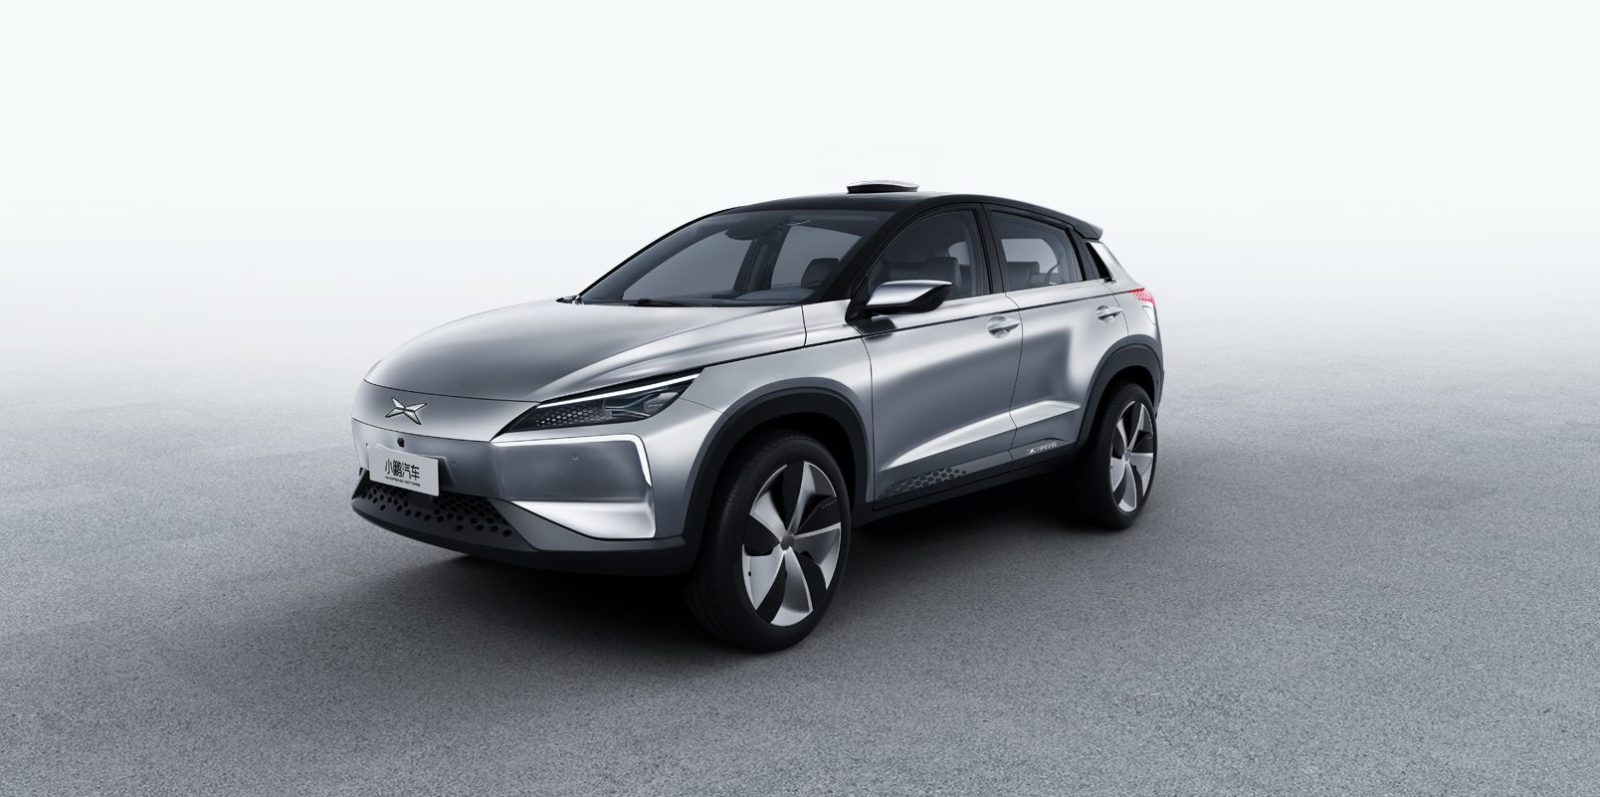 Tesla Inspired Chinese Ev Startup Launches All Electric Suv Using Open Source Patents